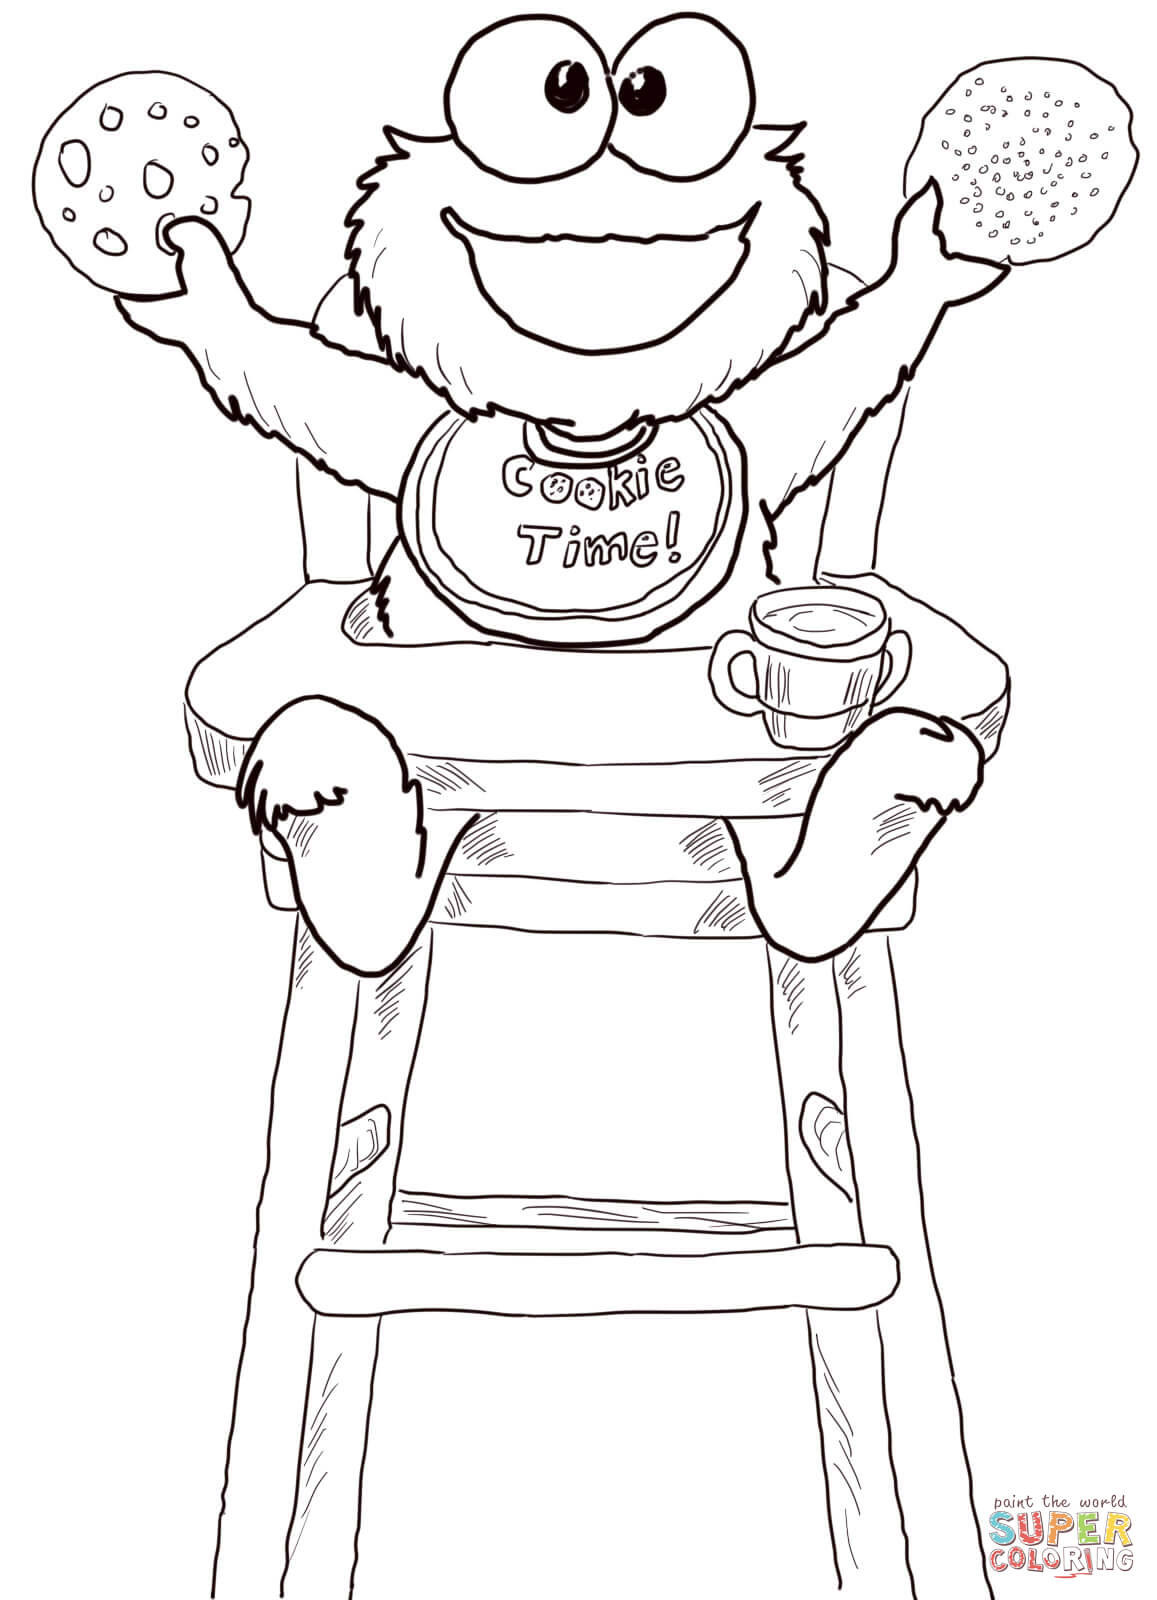 Cookie Time for Cookie Monster coloring page | Free Printable ...